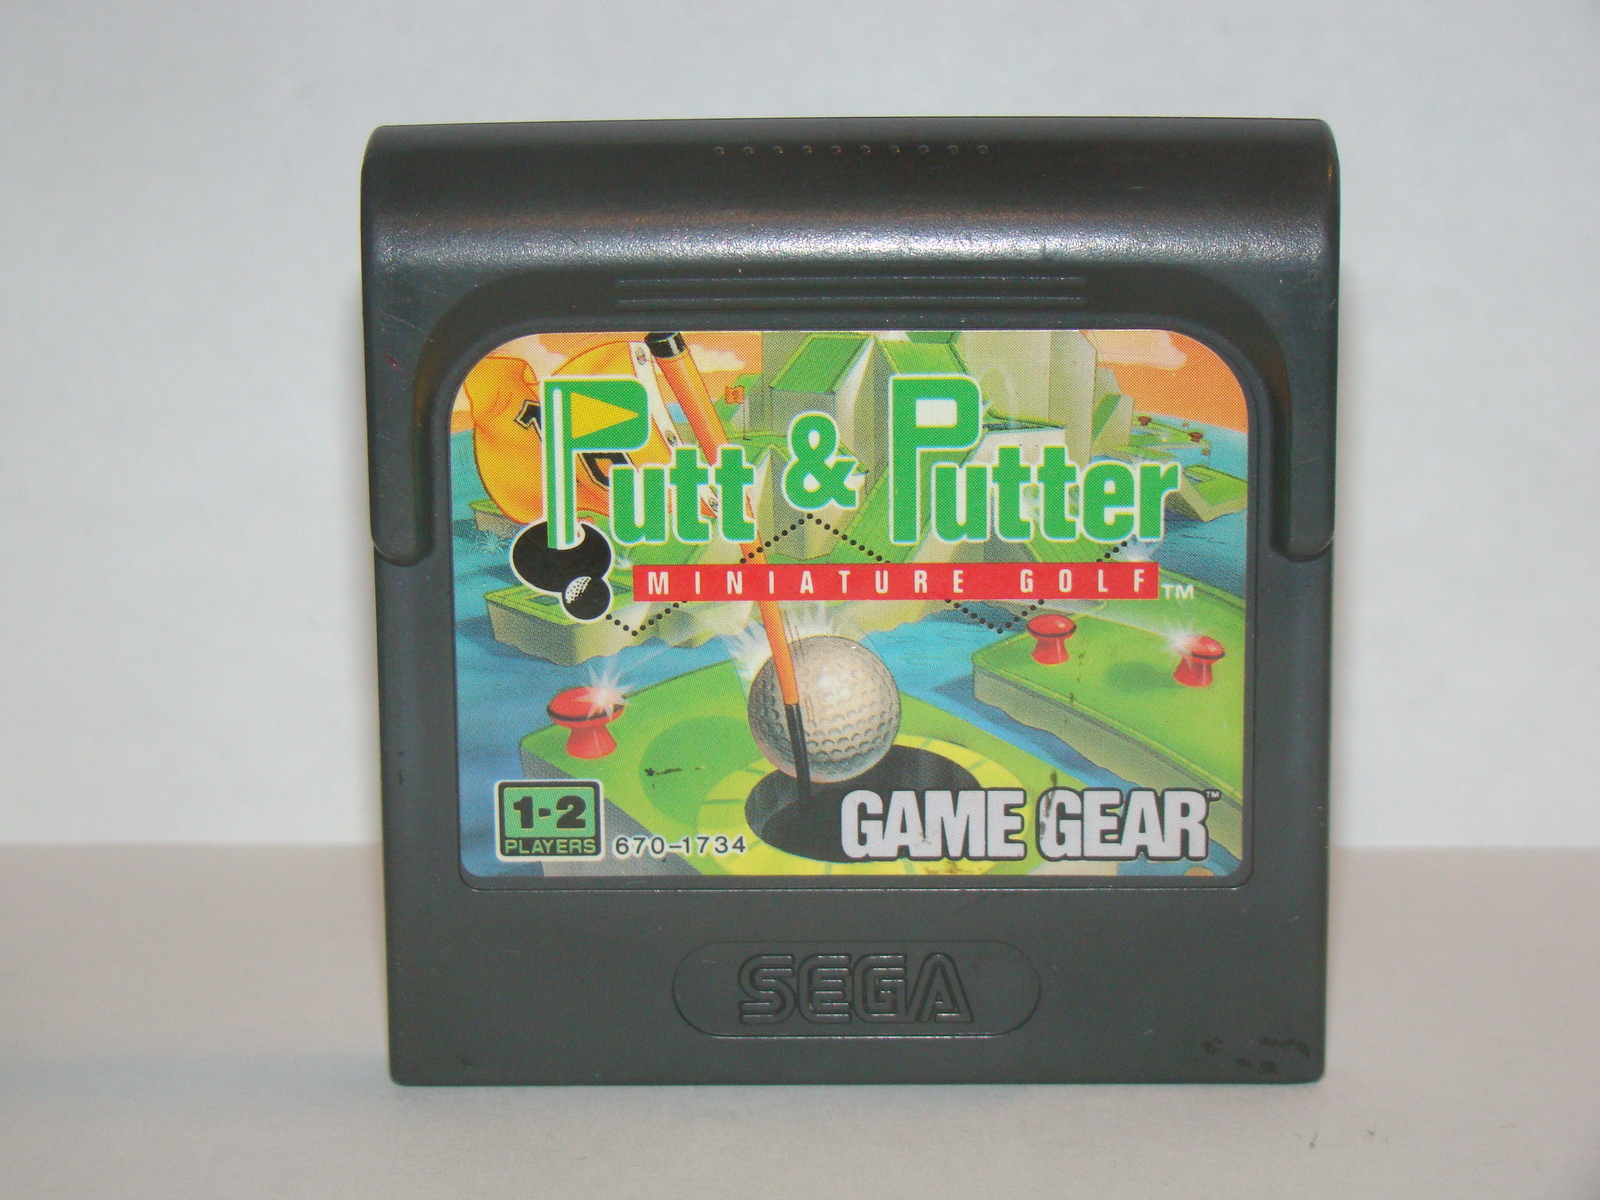 SEGA GAME GEAR - Putt & Putter MINIATURE GOLF (Game Only)